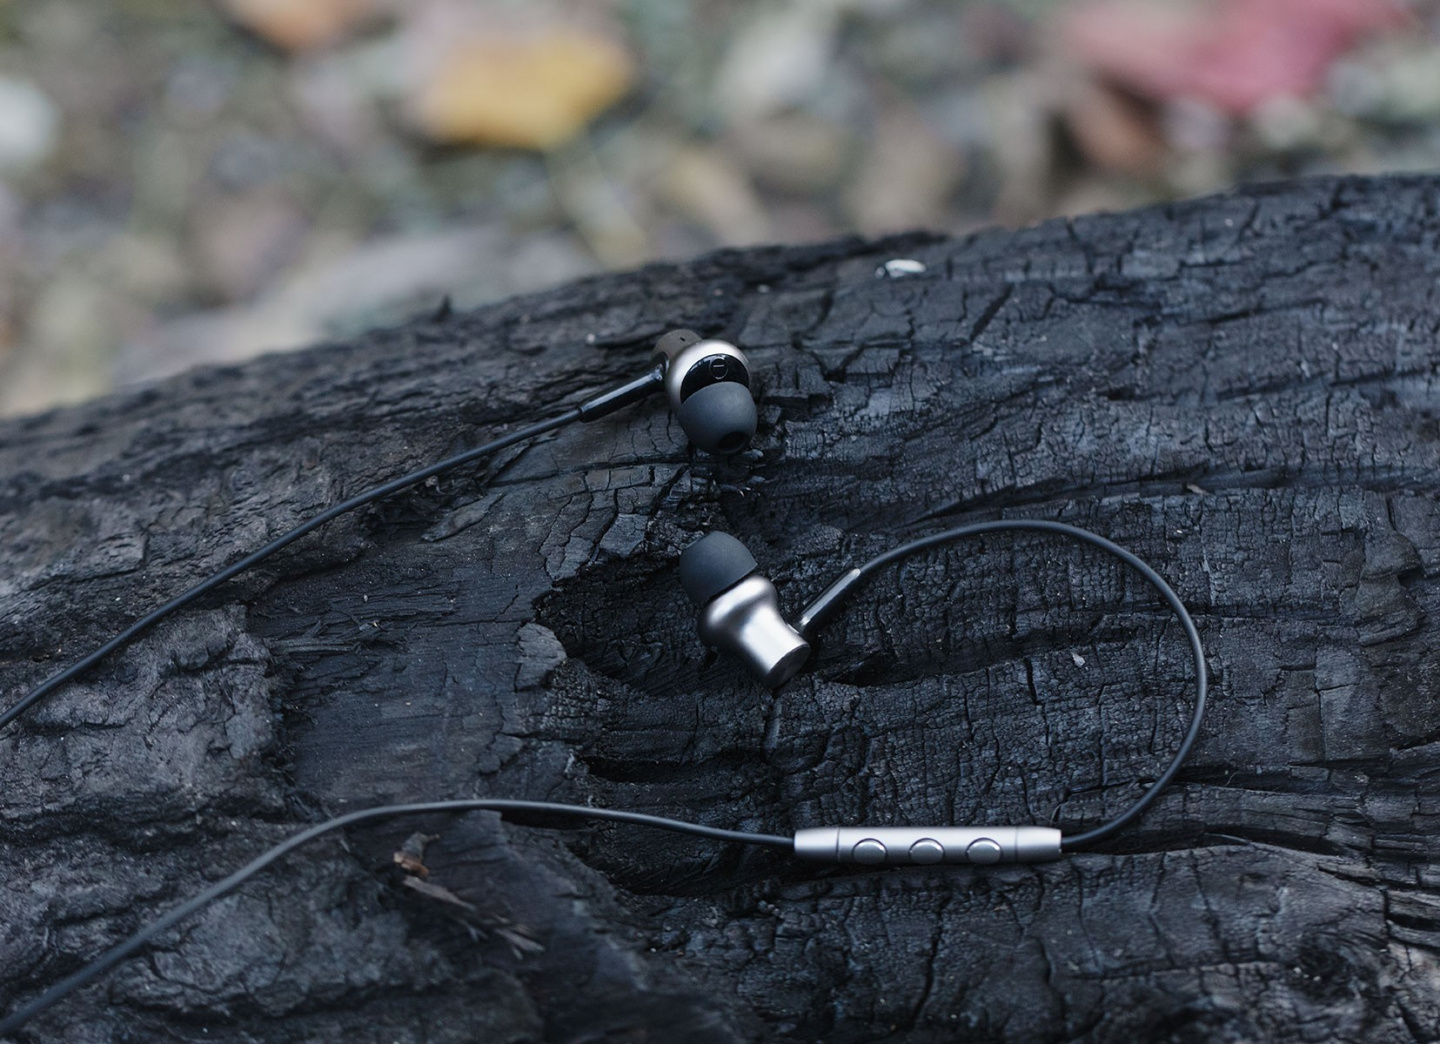 Now it feels almost like you're close to nature, with the all-new Mi In-Ear Headphones Pro HD.